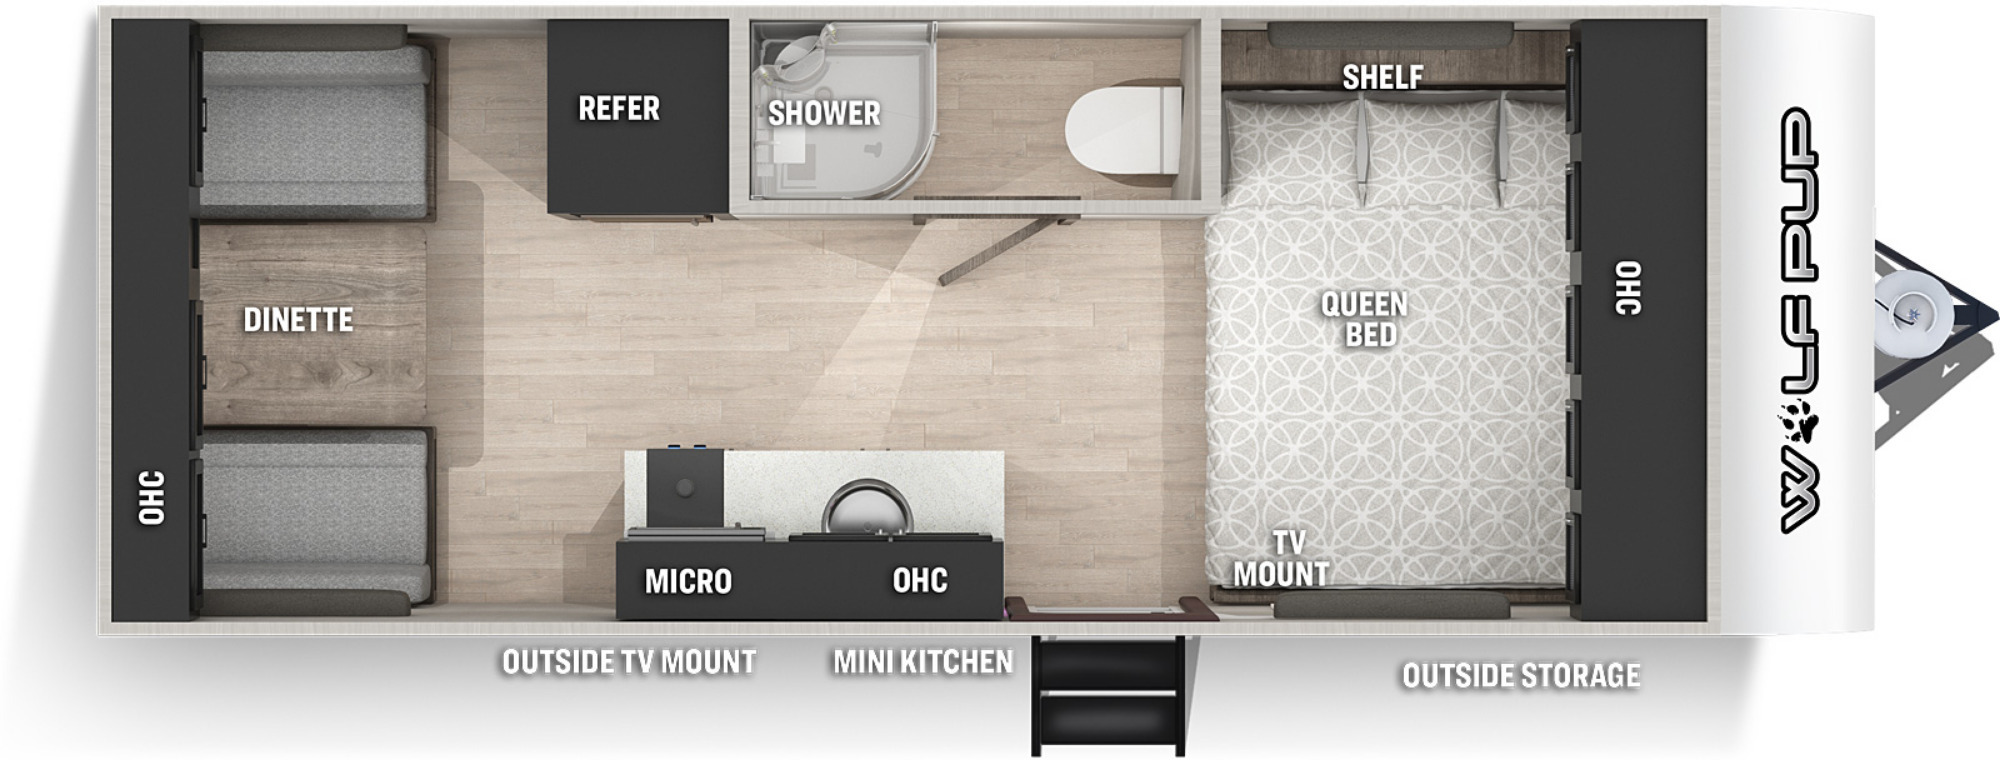 View Floor Plan for 2022 FOREST RIVER WOLF PUP 16TS